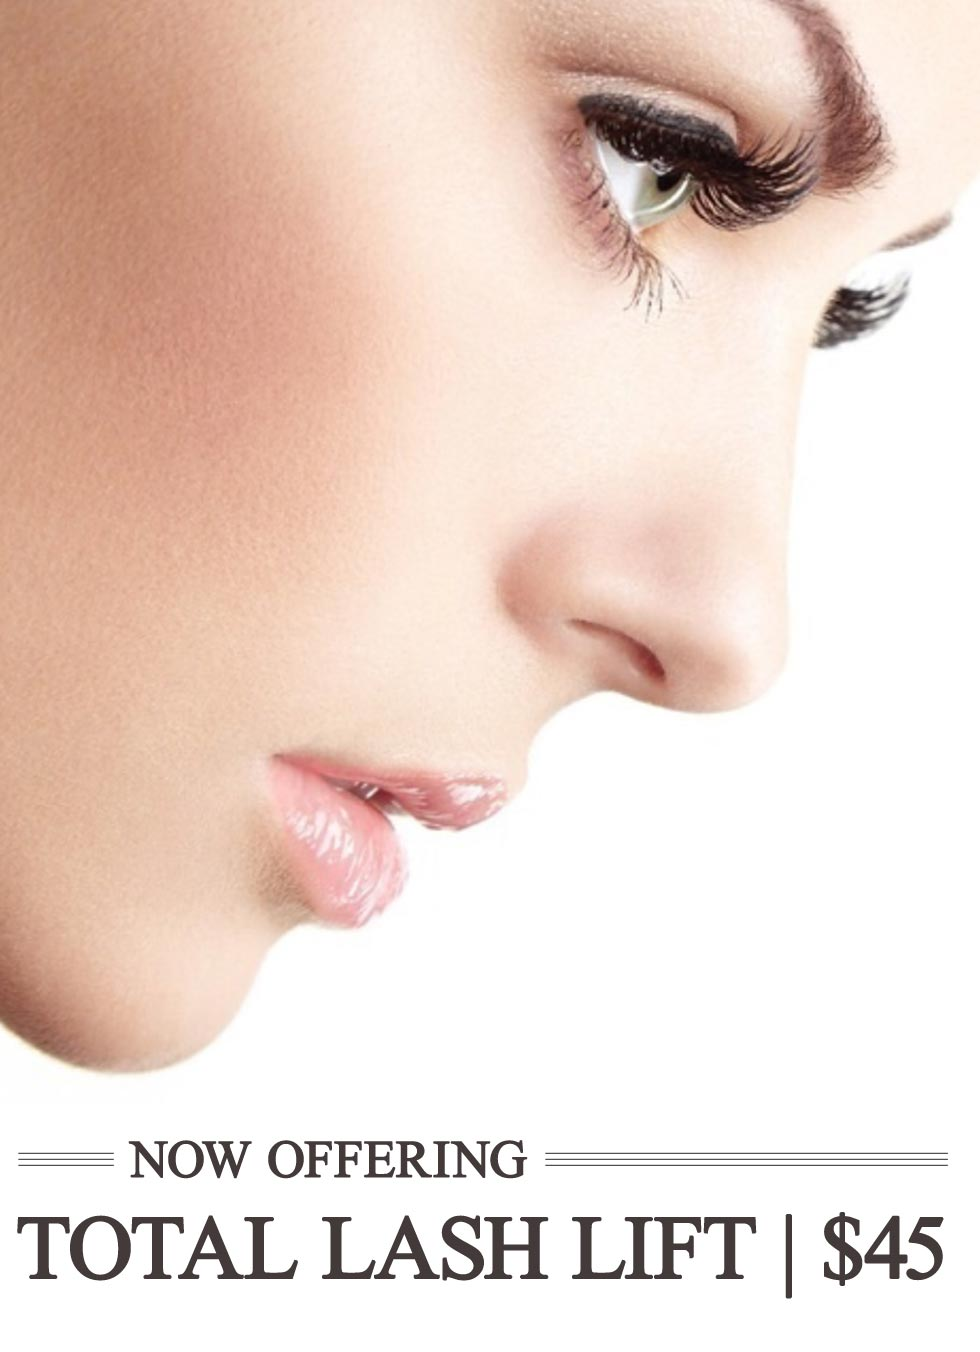 Lakeside Salon - Lash Lift now $45